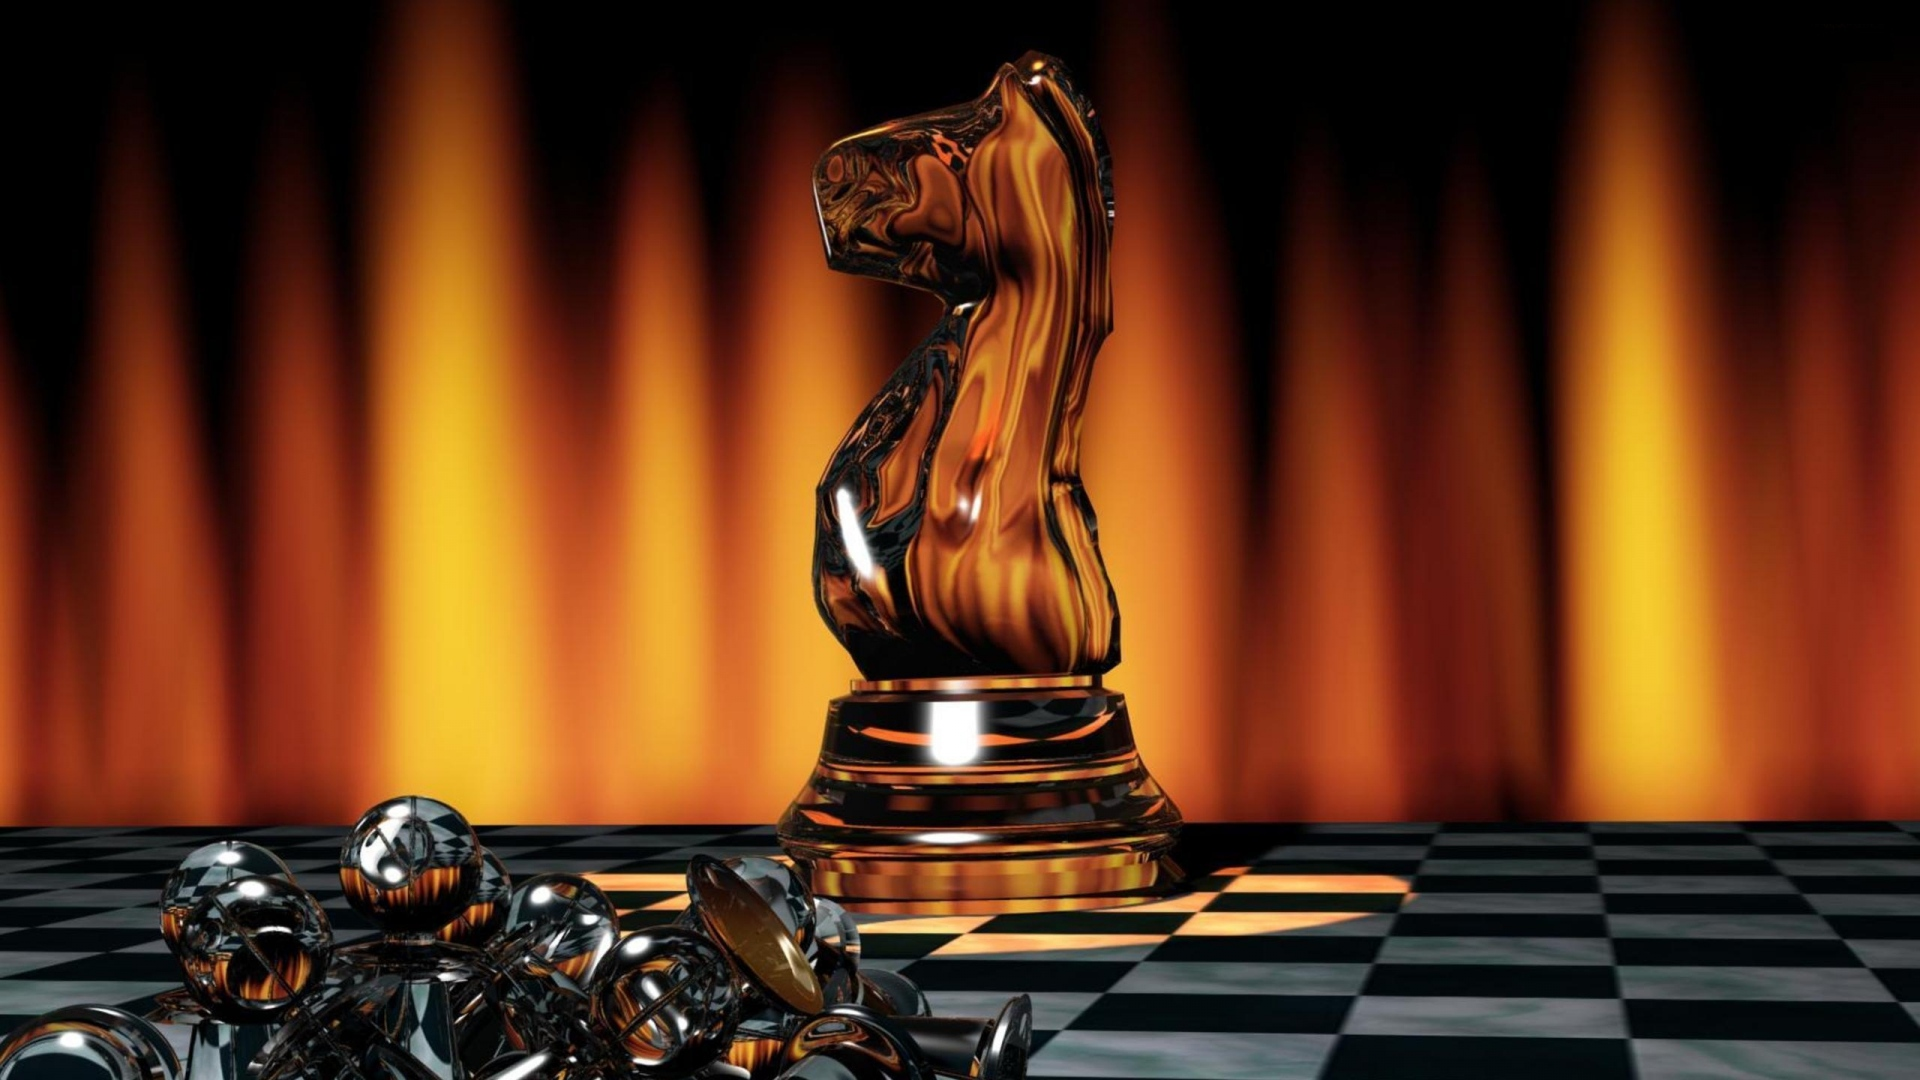 Chess Wallpaper Chess Game Hd Wallpapers: Magnificent Chess Wallpaper